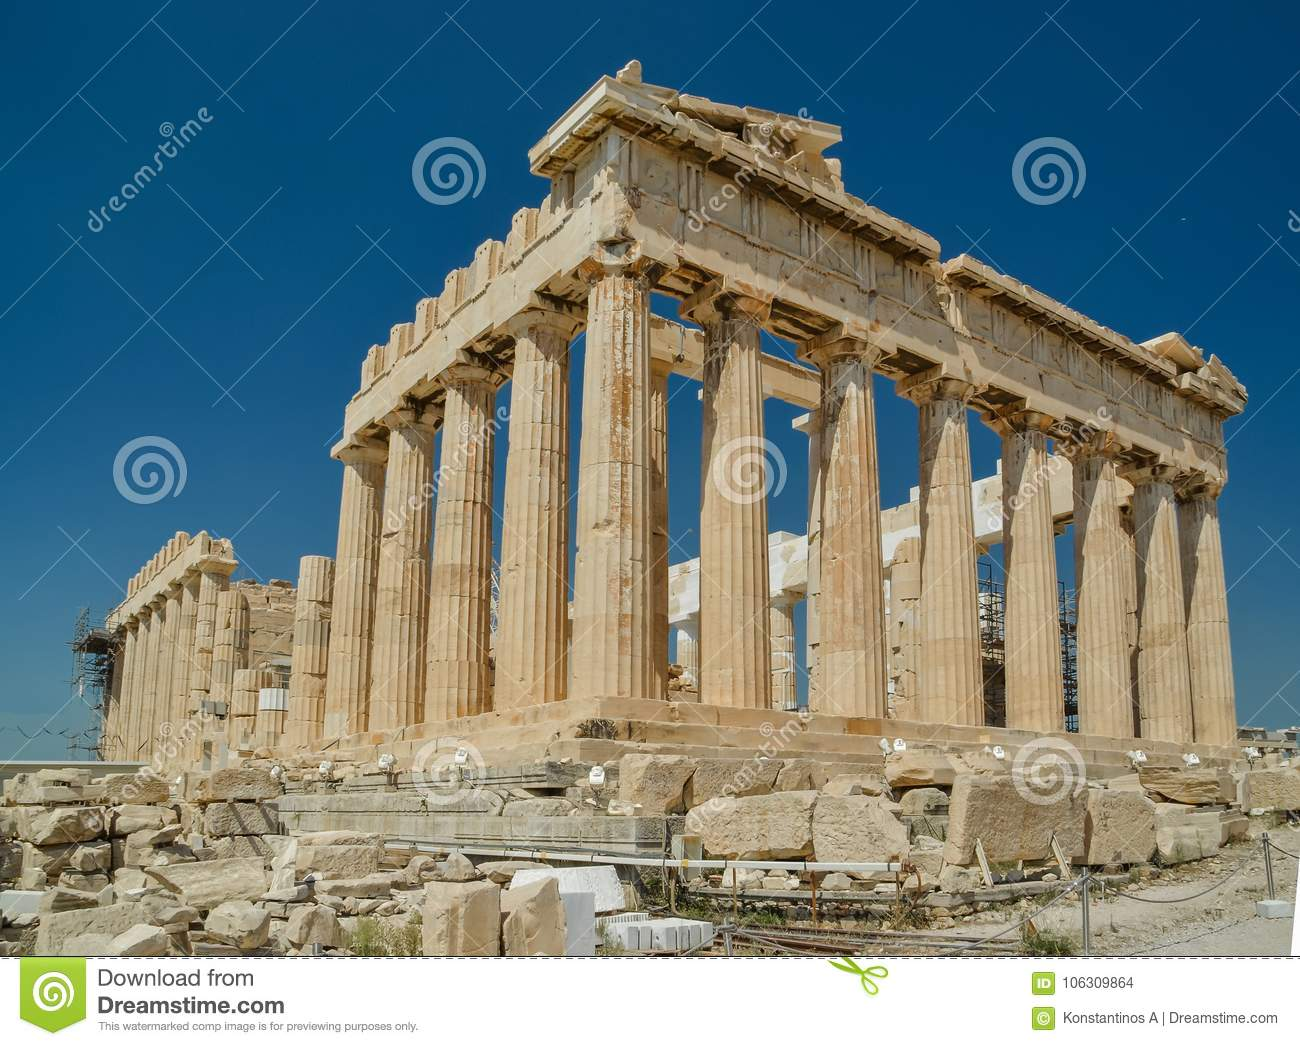 Parthenon ancient greek temple in greek capital Athens Greece